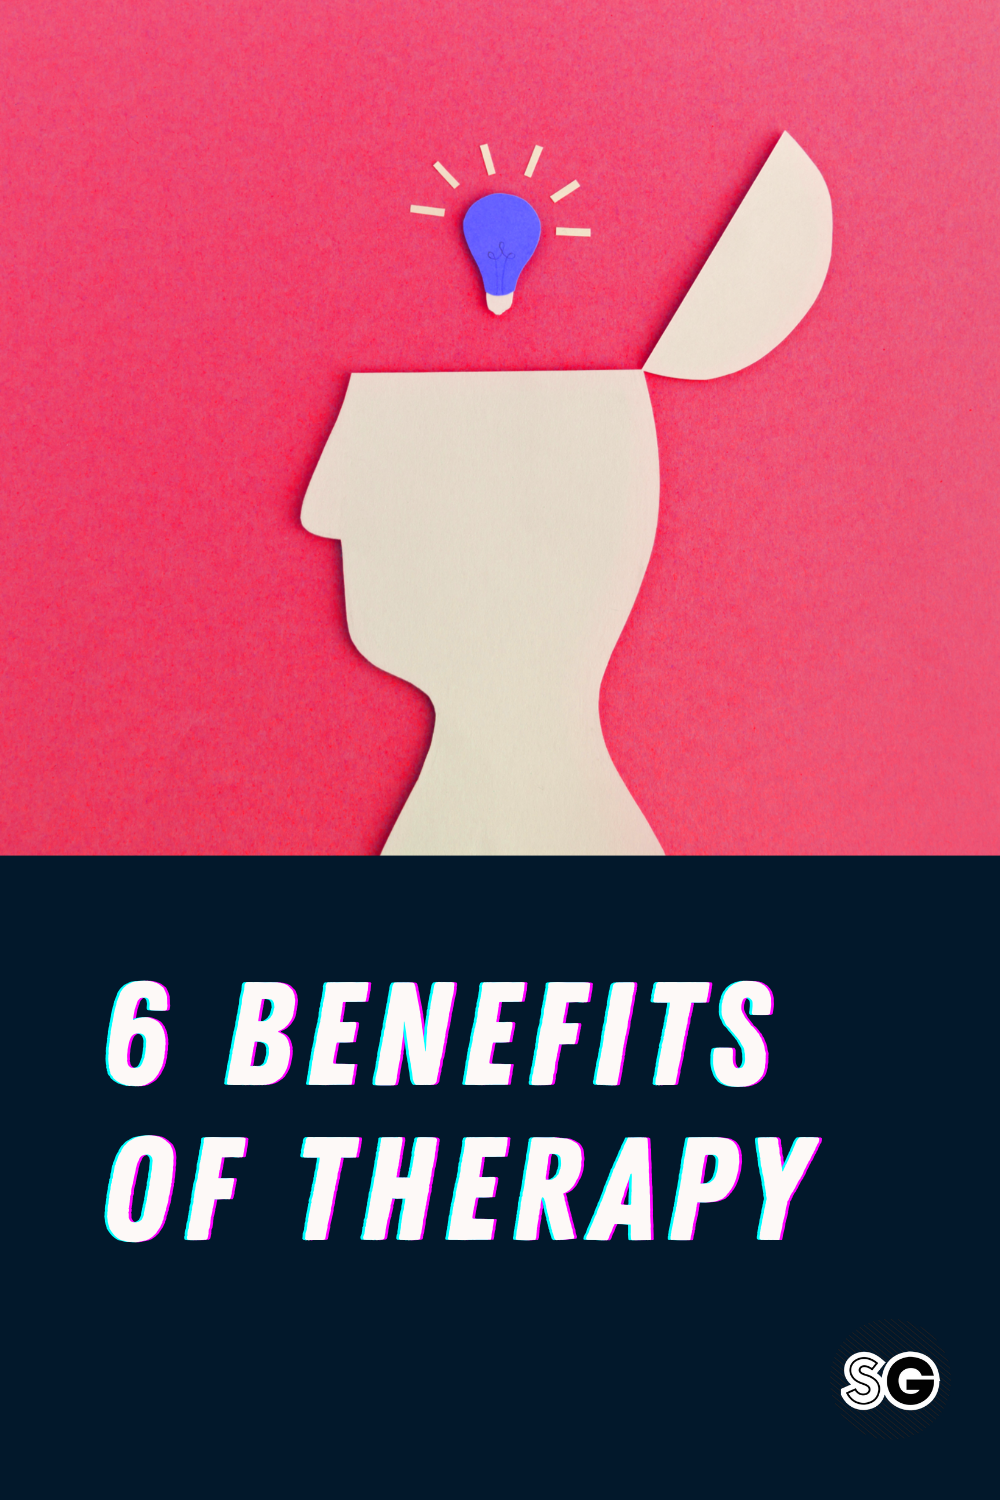 6 benefits of therapy for mental health